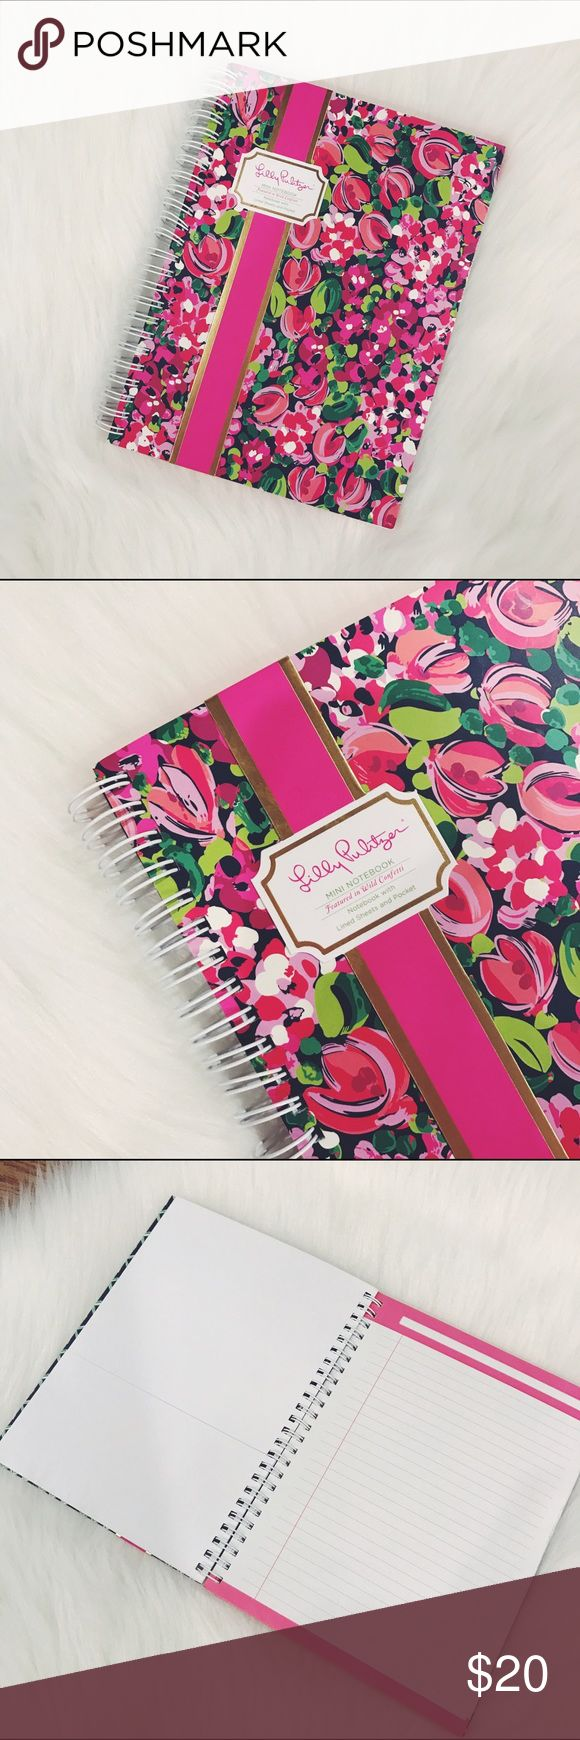 "Lilly Pulitzer Wild Confetti Mini Notebook Wild Confetti, Hardcover mini notebook with spiral and lined sheets, pocket, size small/medium, perfect for a purse or backpack. Measurements: 6""x8 1/4"" brand new.  ✅Check my other Kate Spade and Lilly Pulitzer items, great for Christmas Gifts.           🌷10% off bundle 2 items or more!🌷                             •NO TRADING                             •no offers please                             •FINAL SALE                             •smoke…"